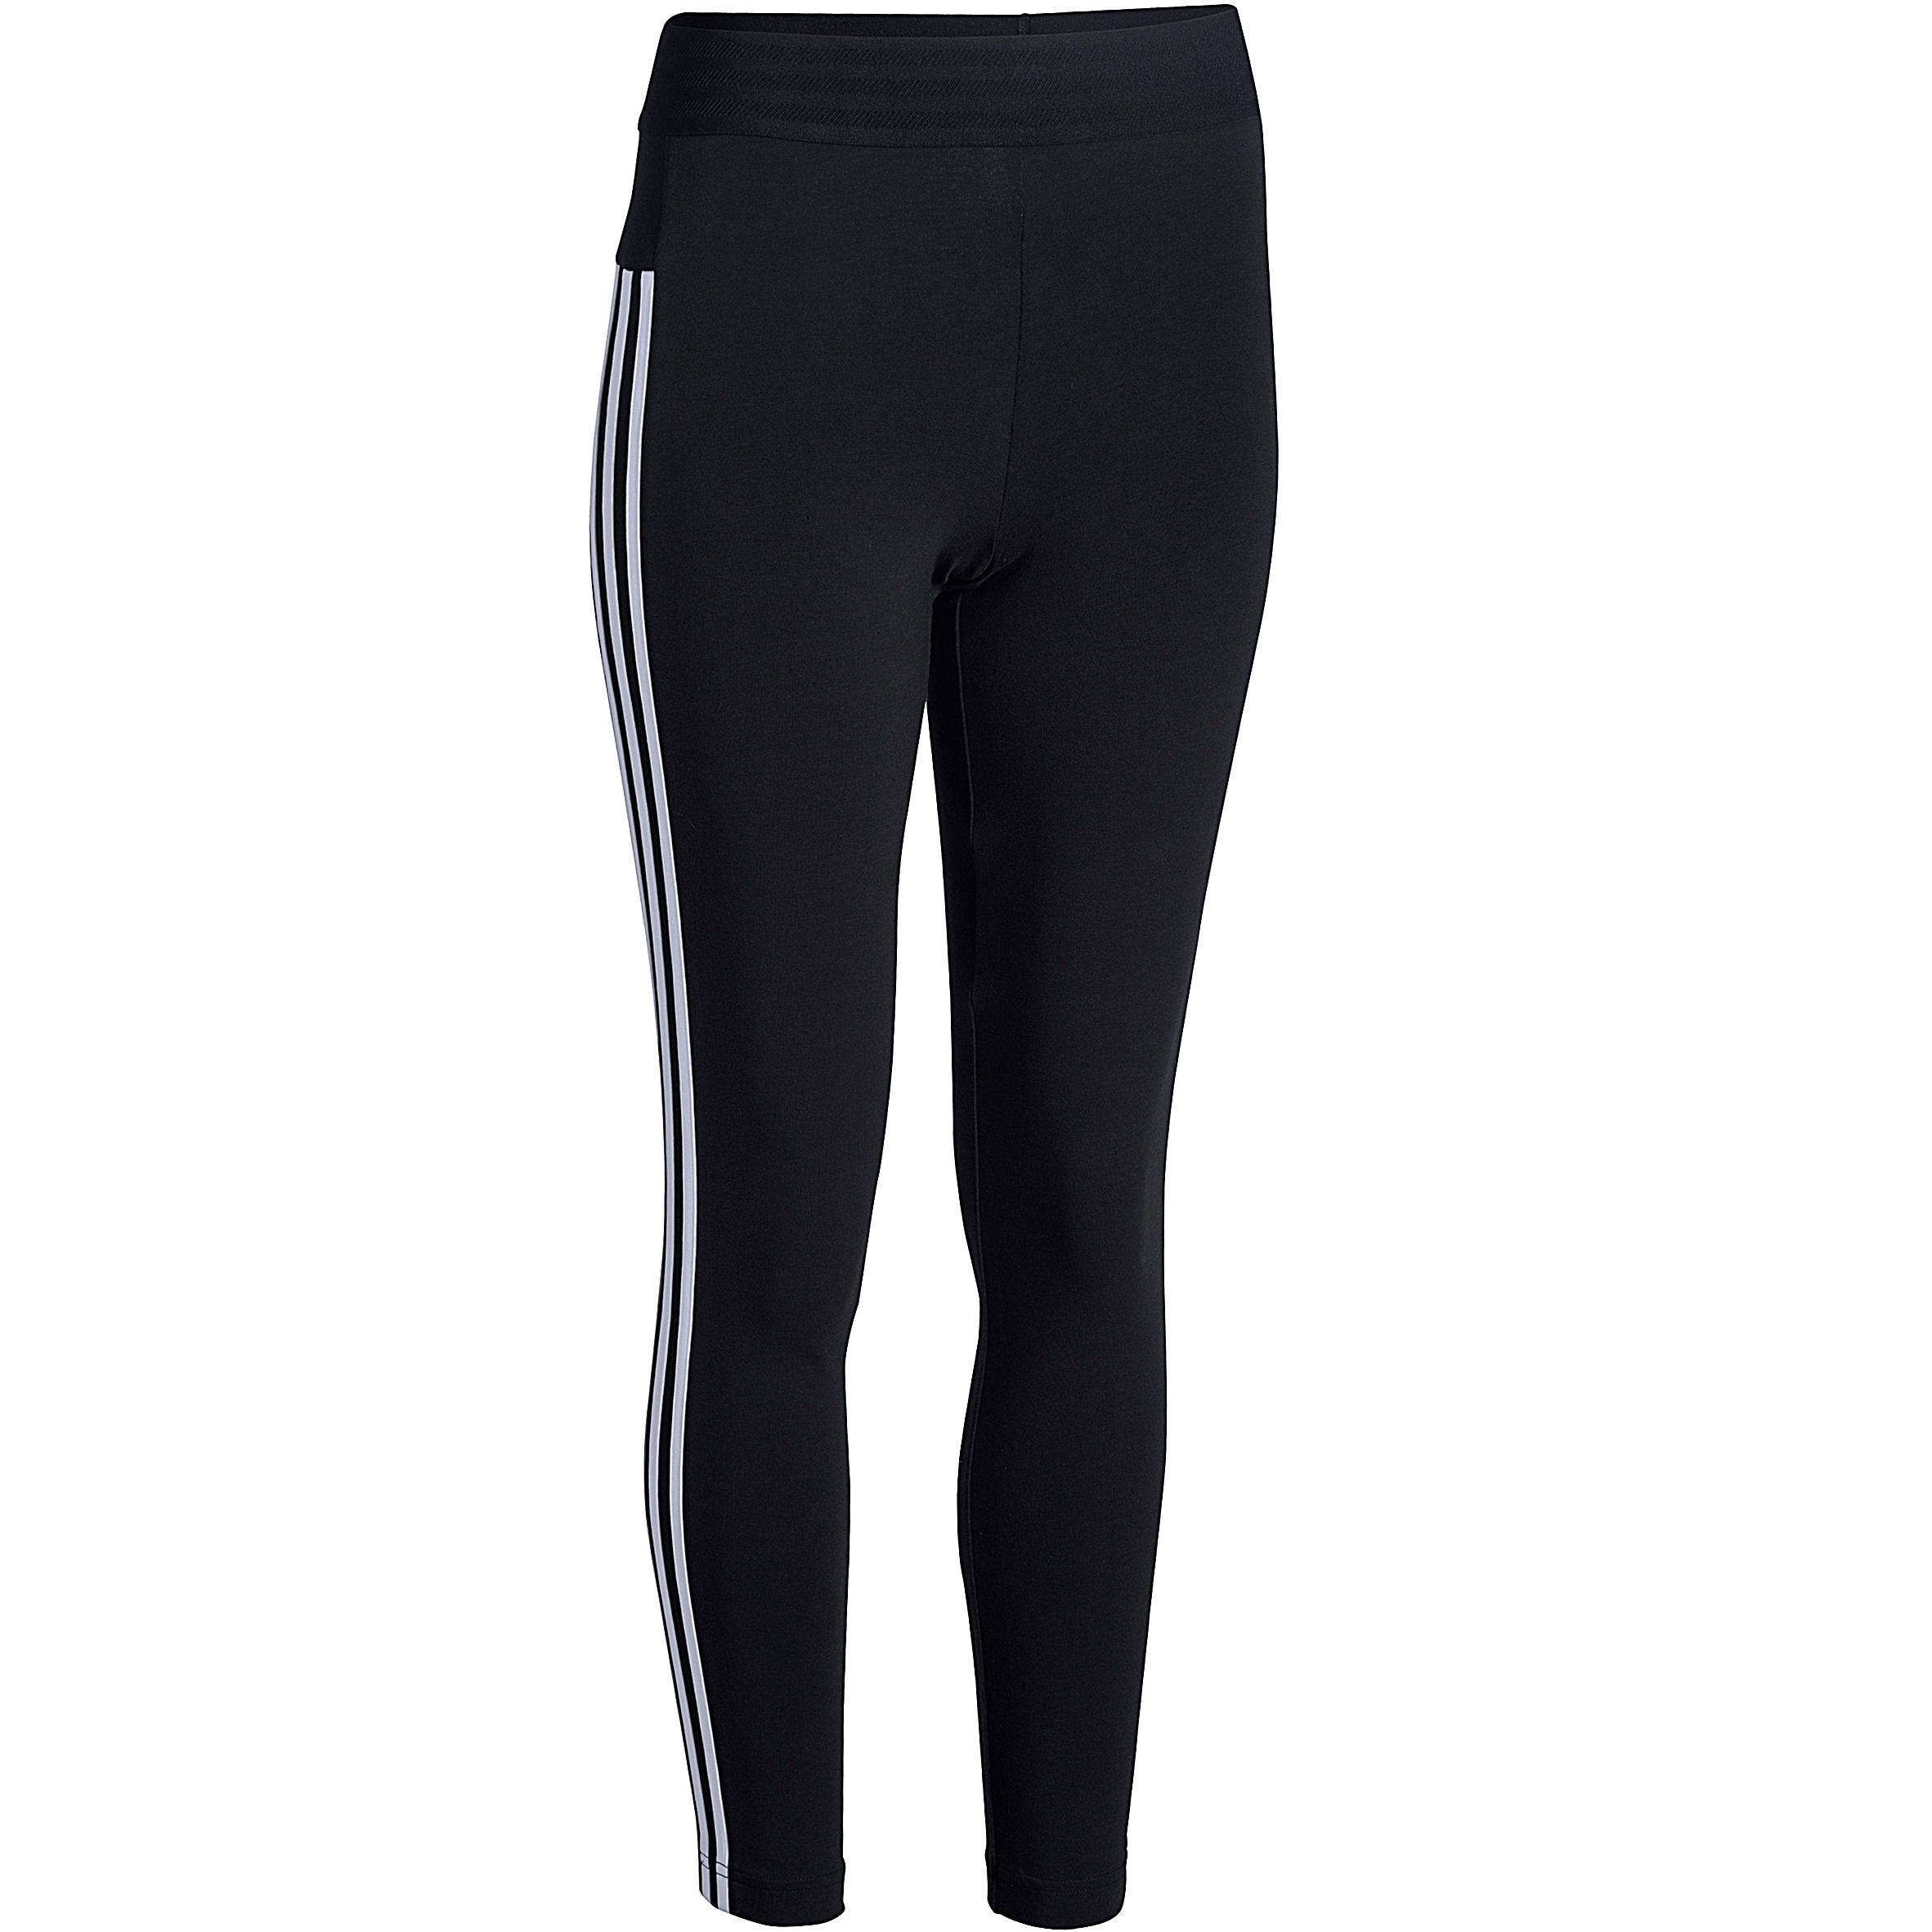 NU 15% KORTING: ADIDAS PERFORMANCE legging »ESSENTIALS 3 STRIPES TIGHT«